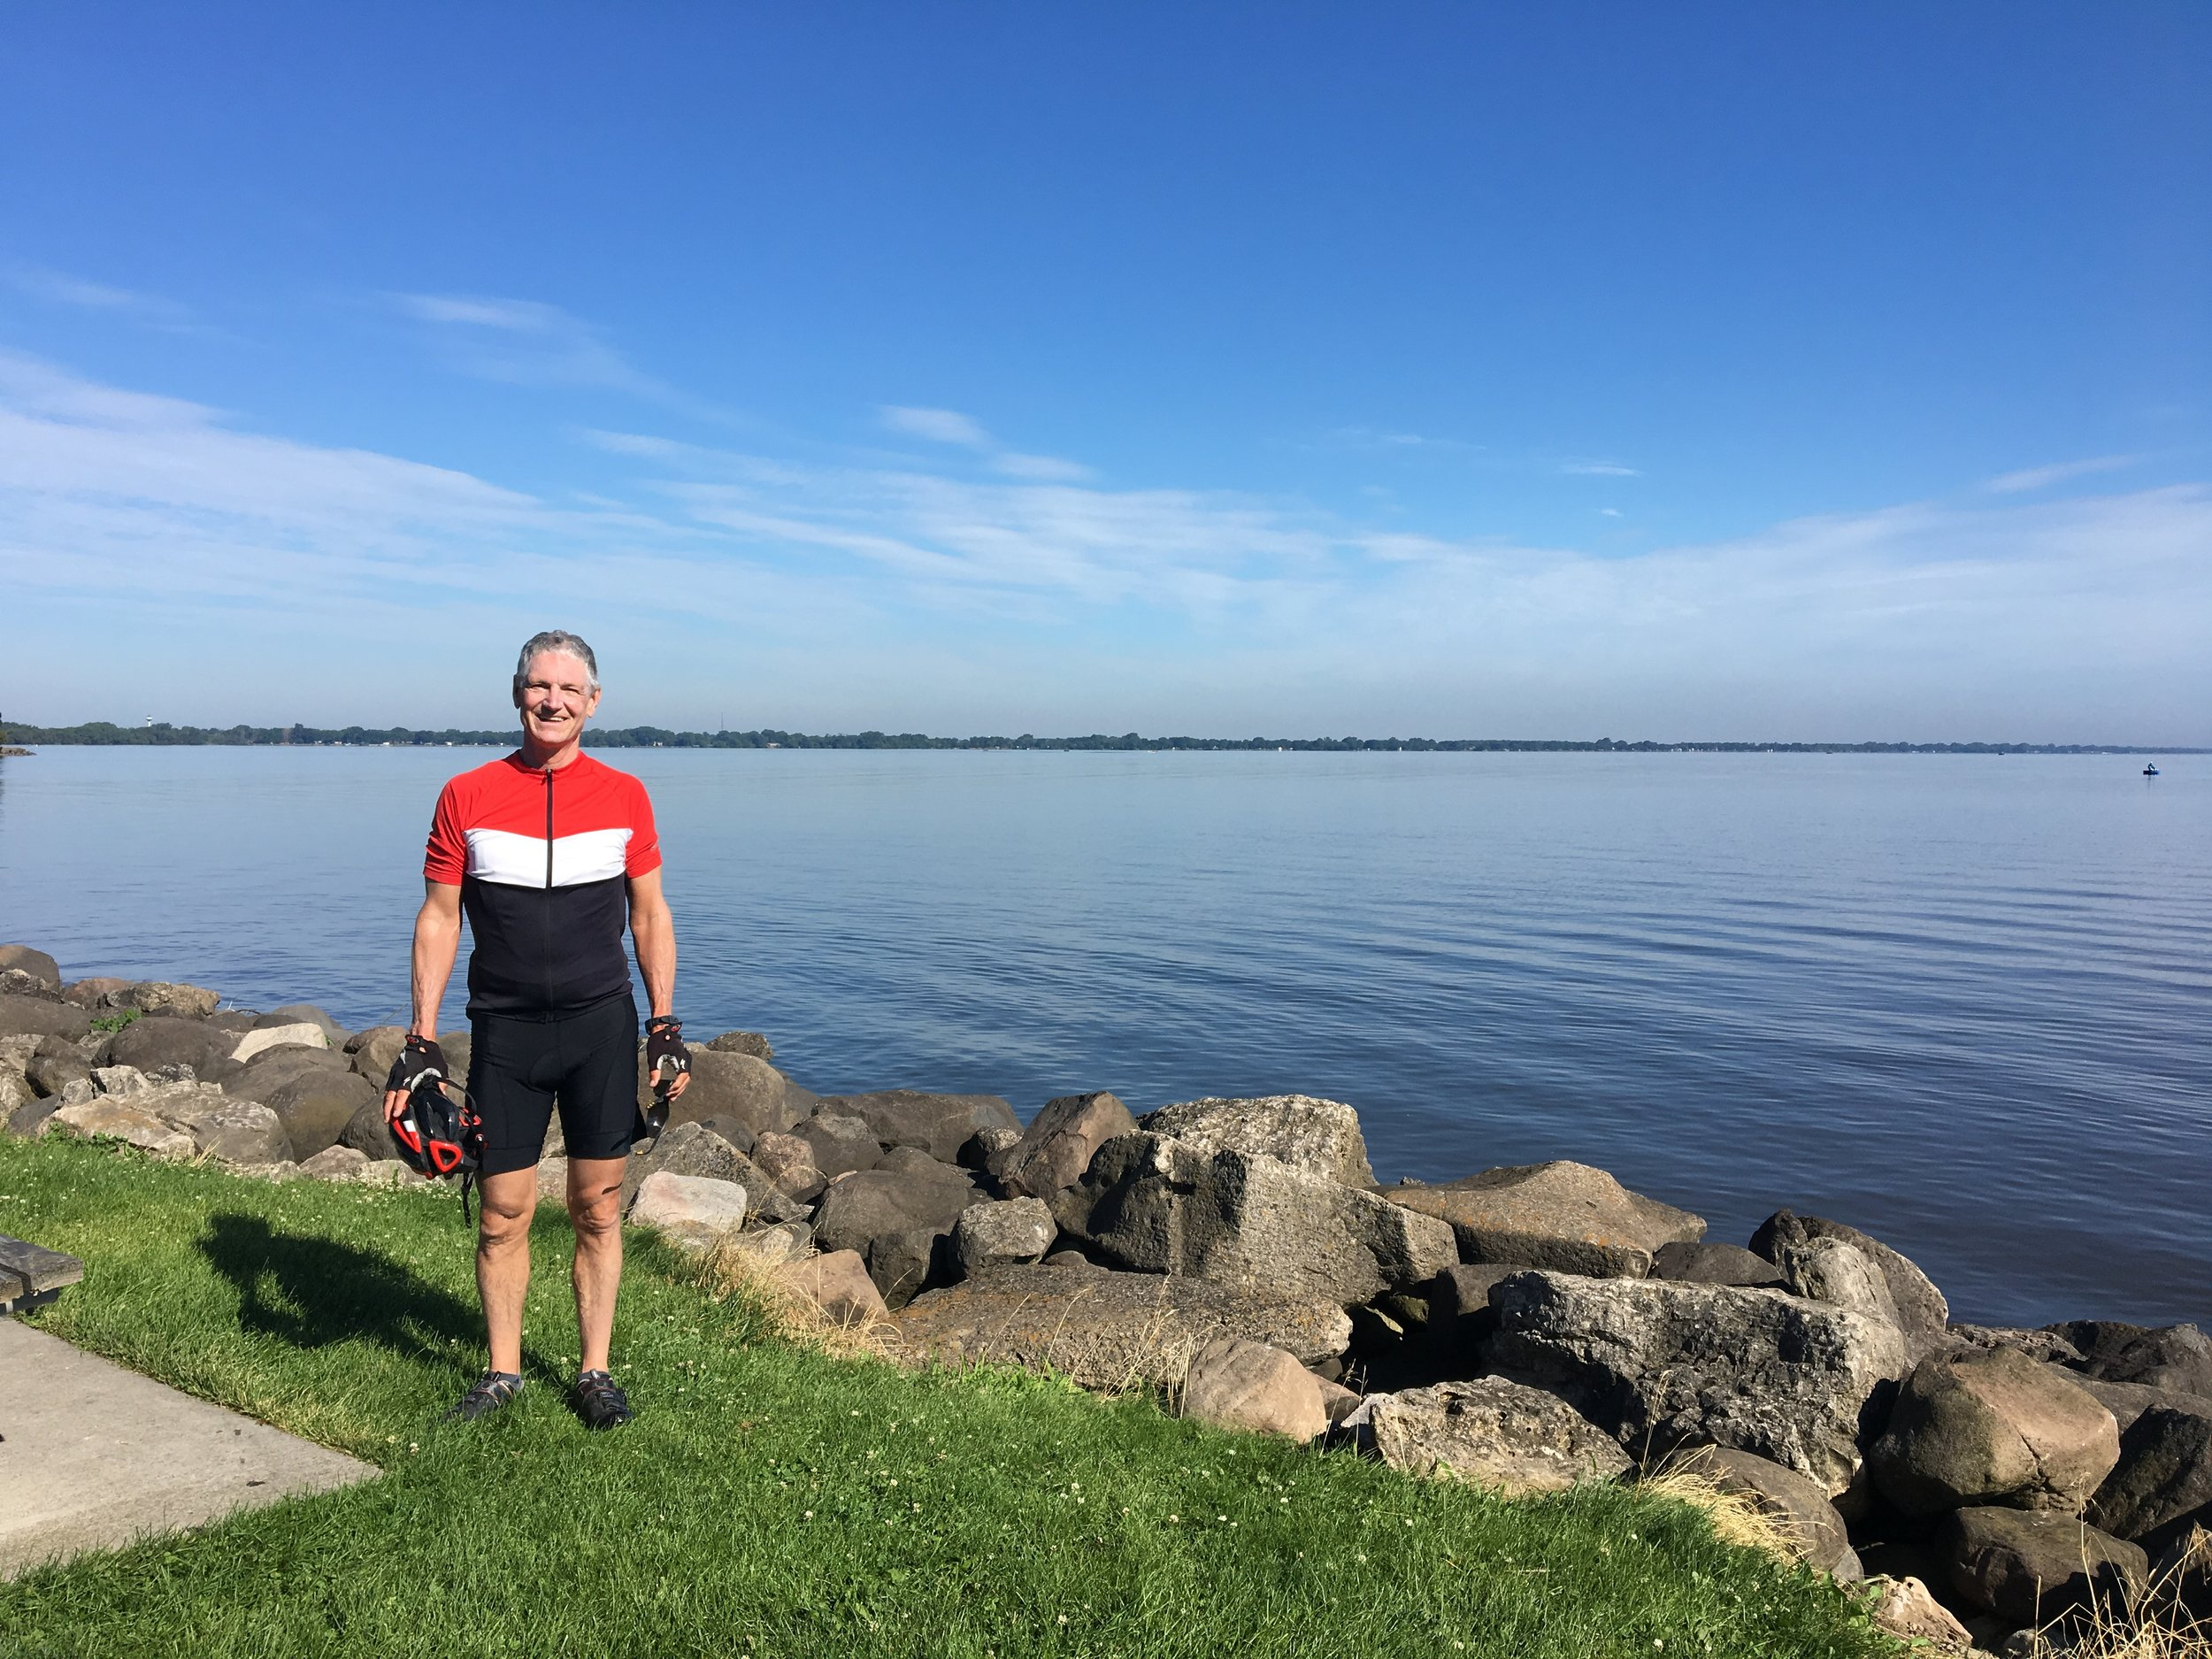 - This photo of me is at the southern end of Lake Winnebago in Fond du Lac, Wisconsin. Fond du Lac is a lovely town that must be doing well economically, as most of what we saw there seemed new and clean.